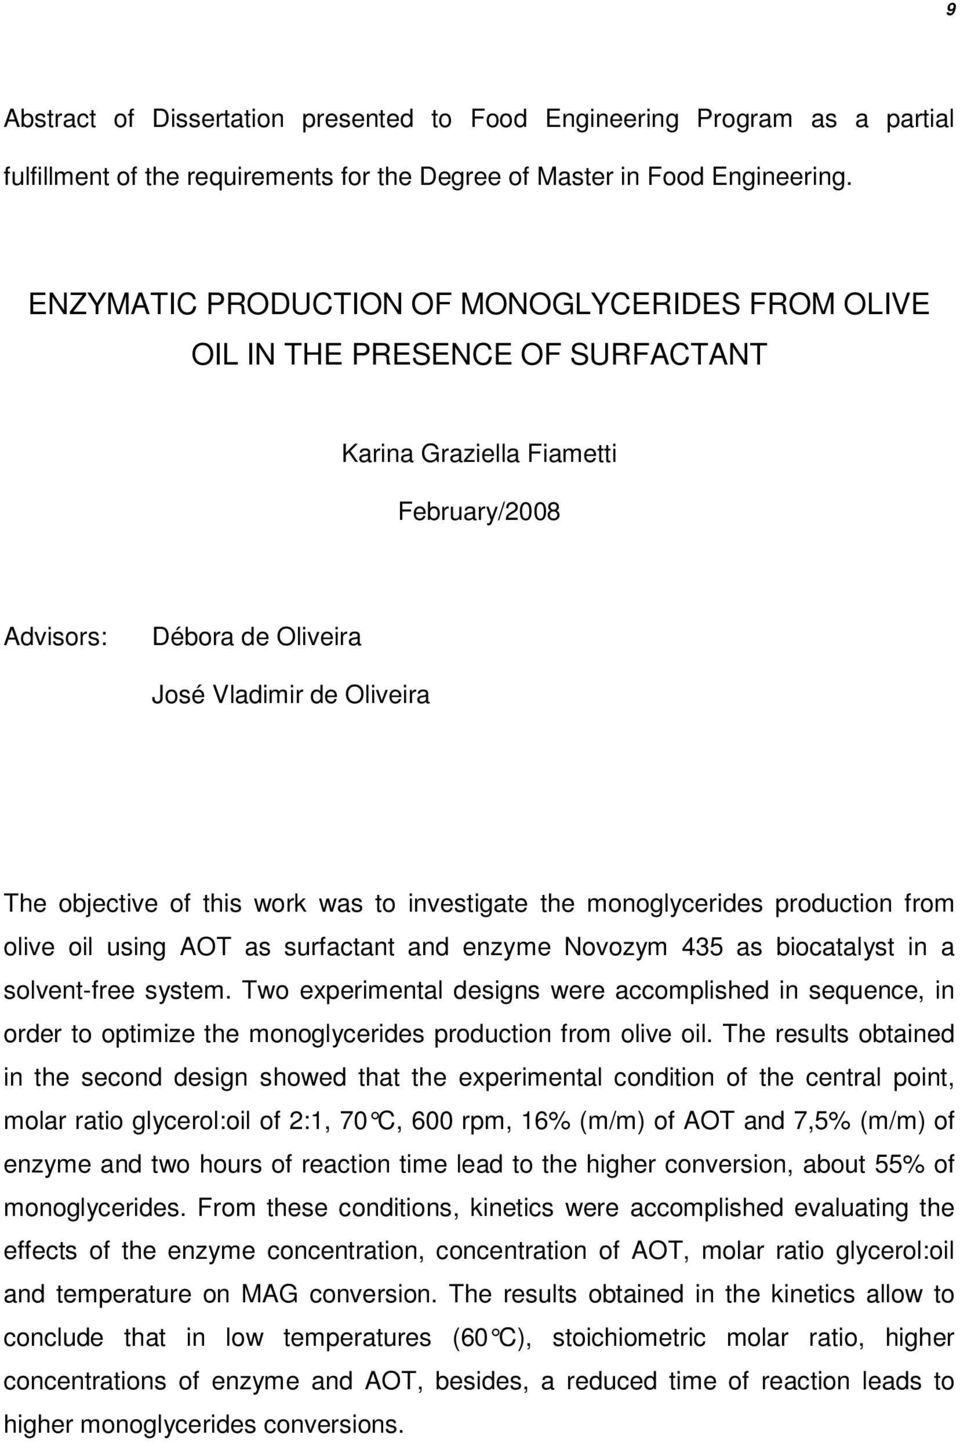 this work was to investigate the monoglycerides production from olive oil using AOT as surfactant and enzyme Novozym 435 as biocatalyst in a solvent-free system.